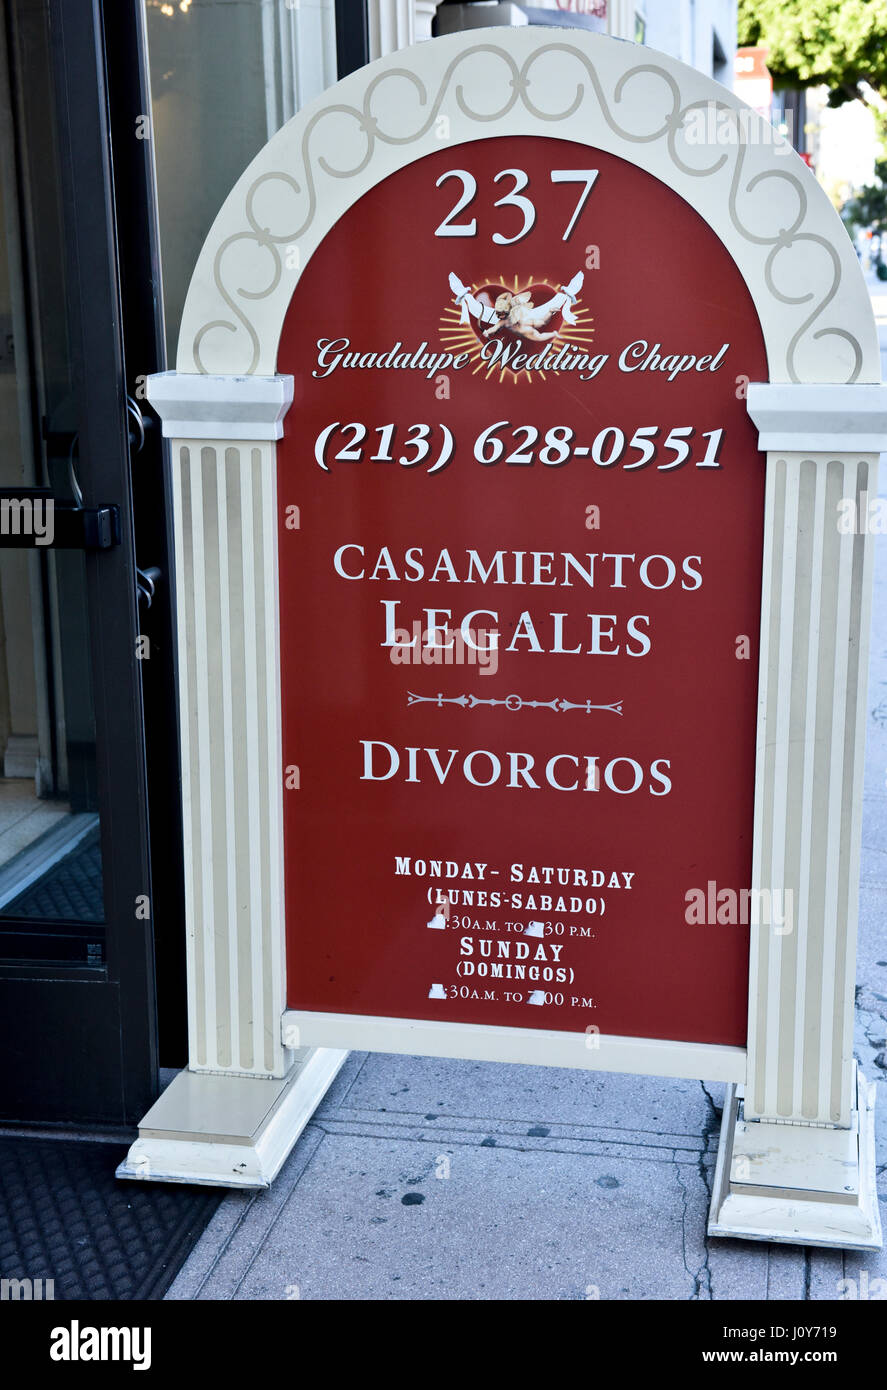 Guadalupe wedding chapel in downtown los angeles california stock guadalupe wedding chapel in downtown los angeles california junglespirit Image collections